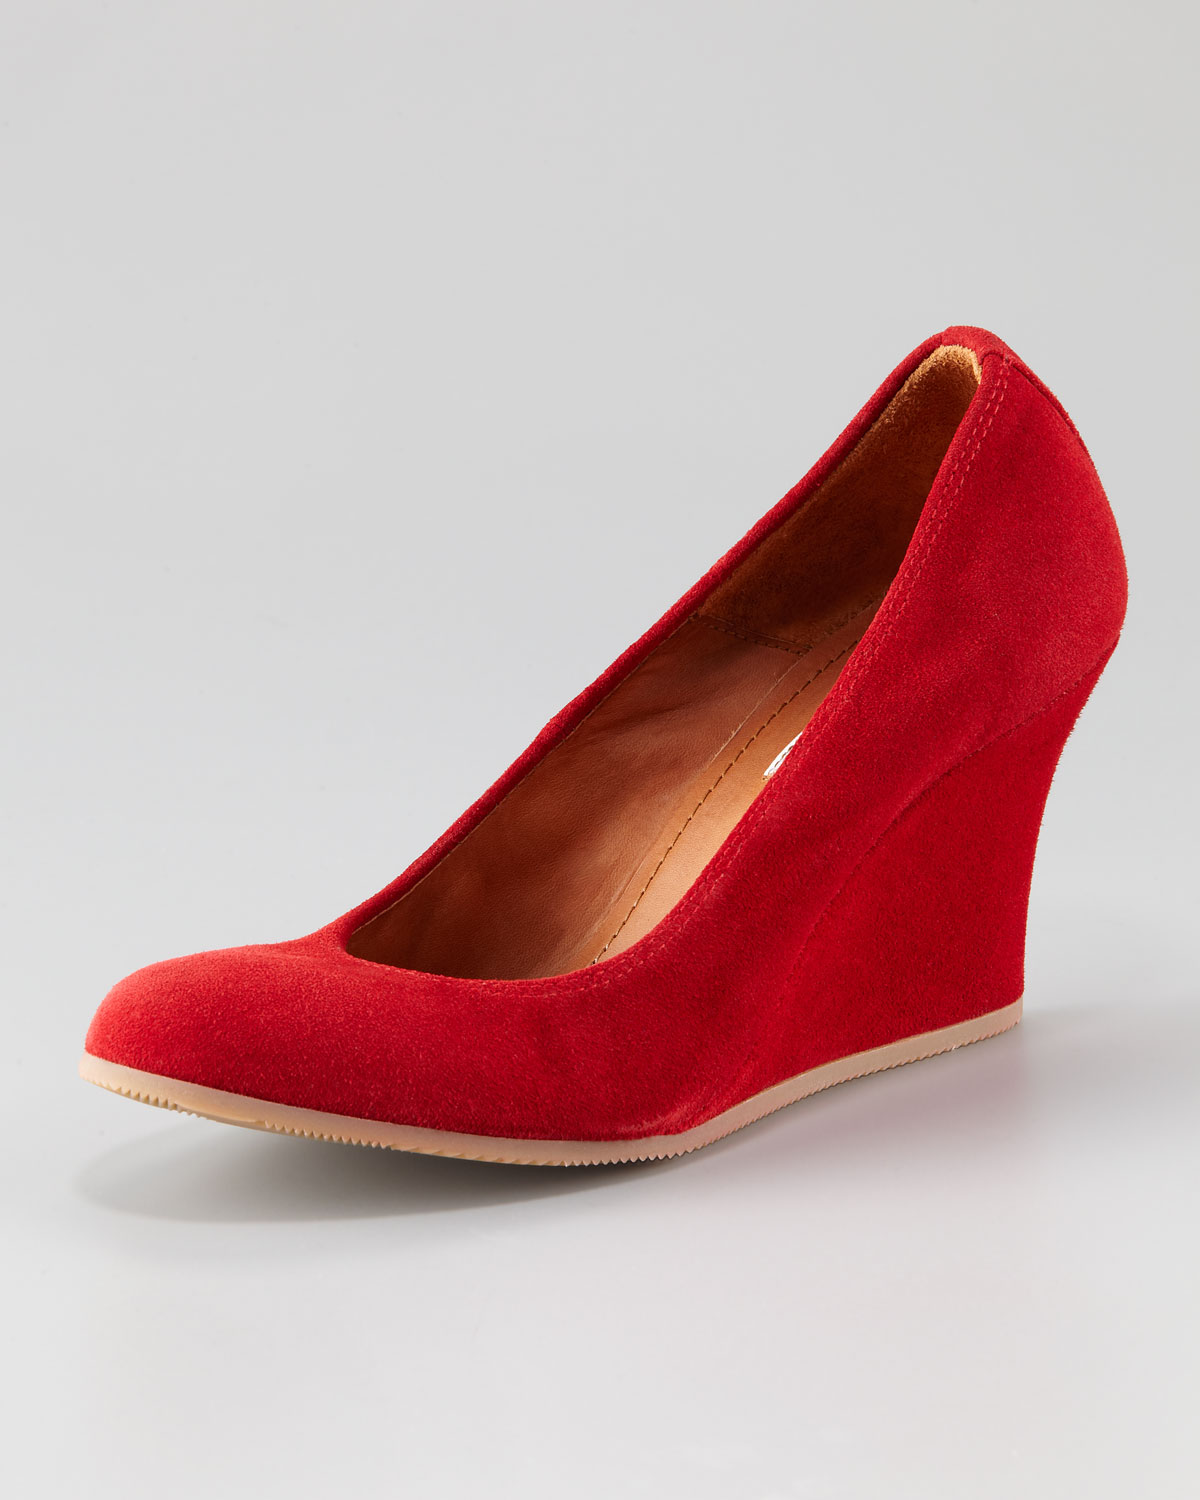 lanvin suede wedge with rubber sole in lyst